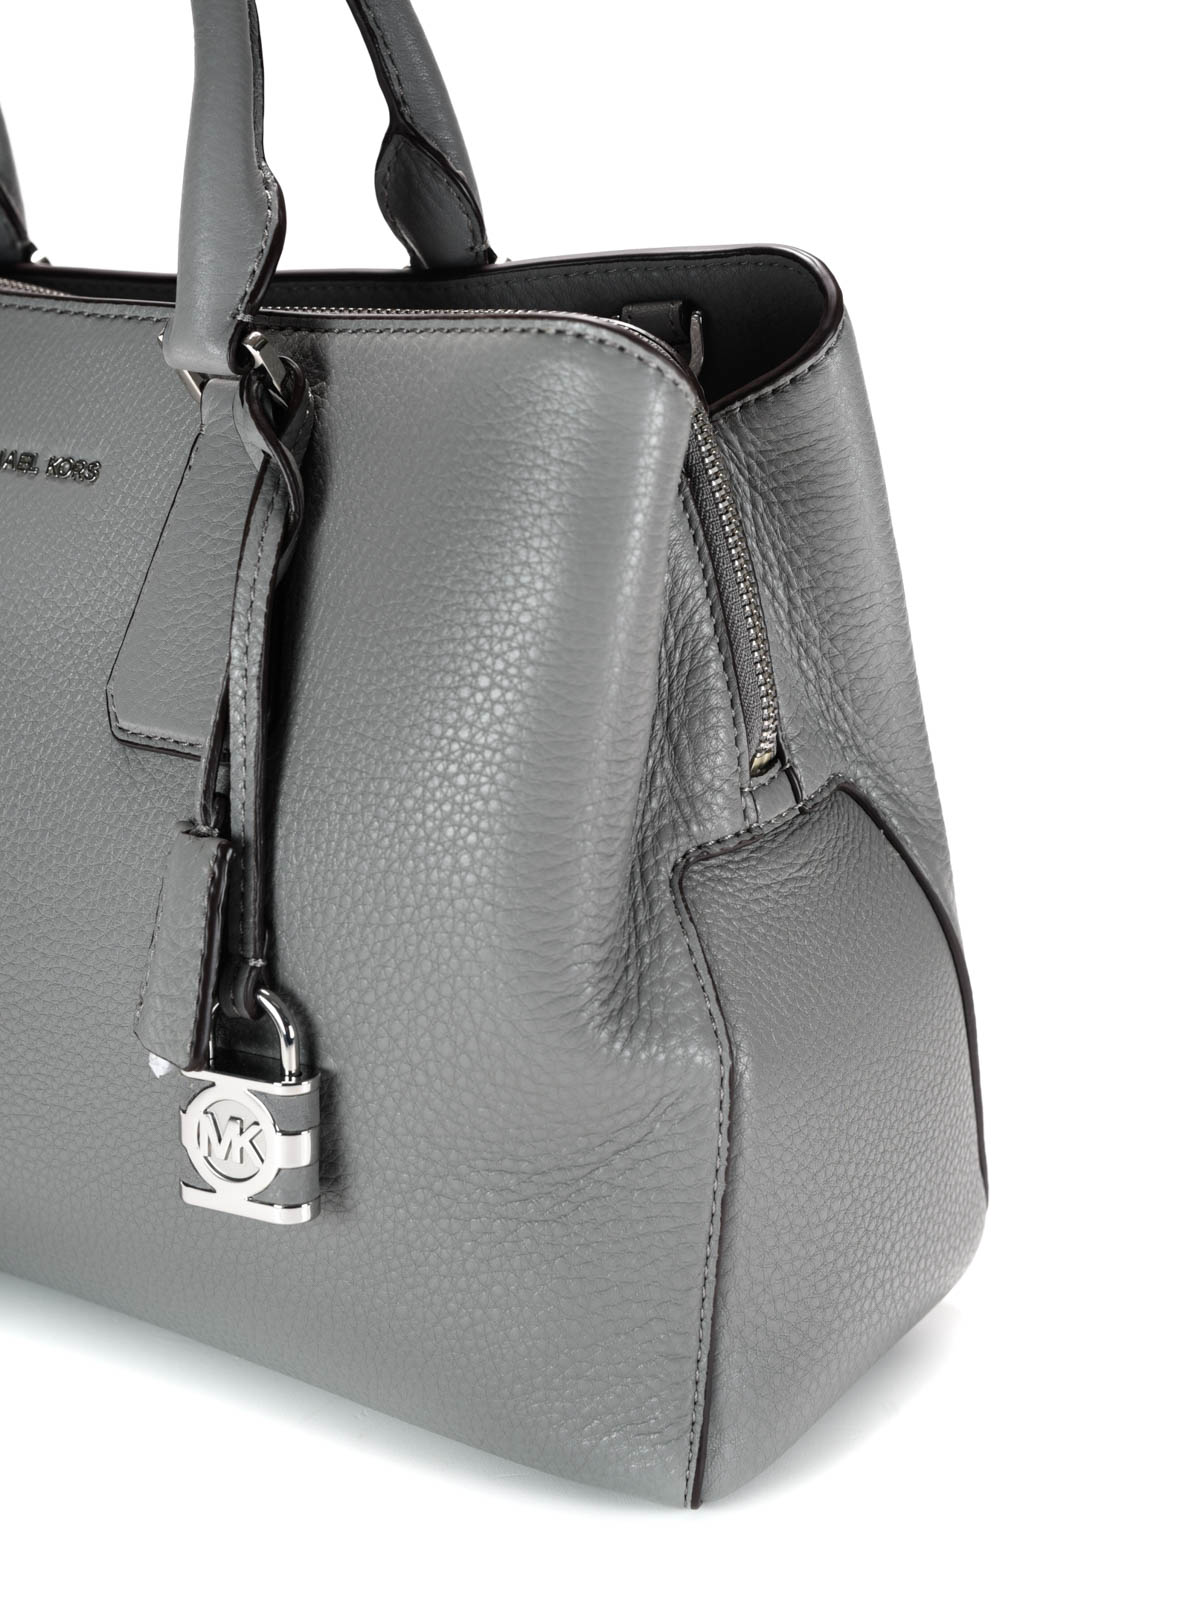 Michael kors outlet online shopping